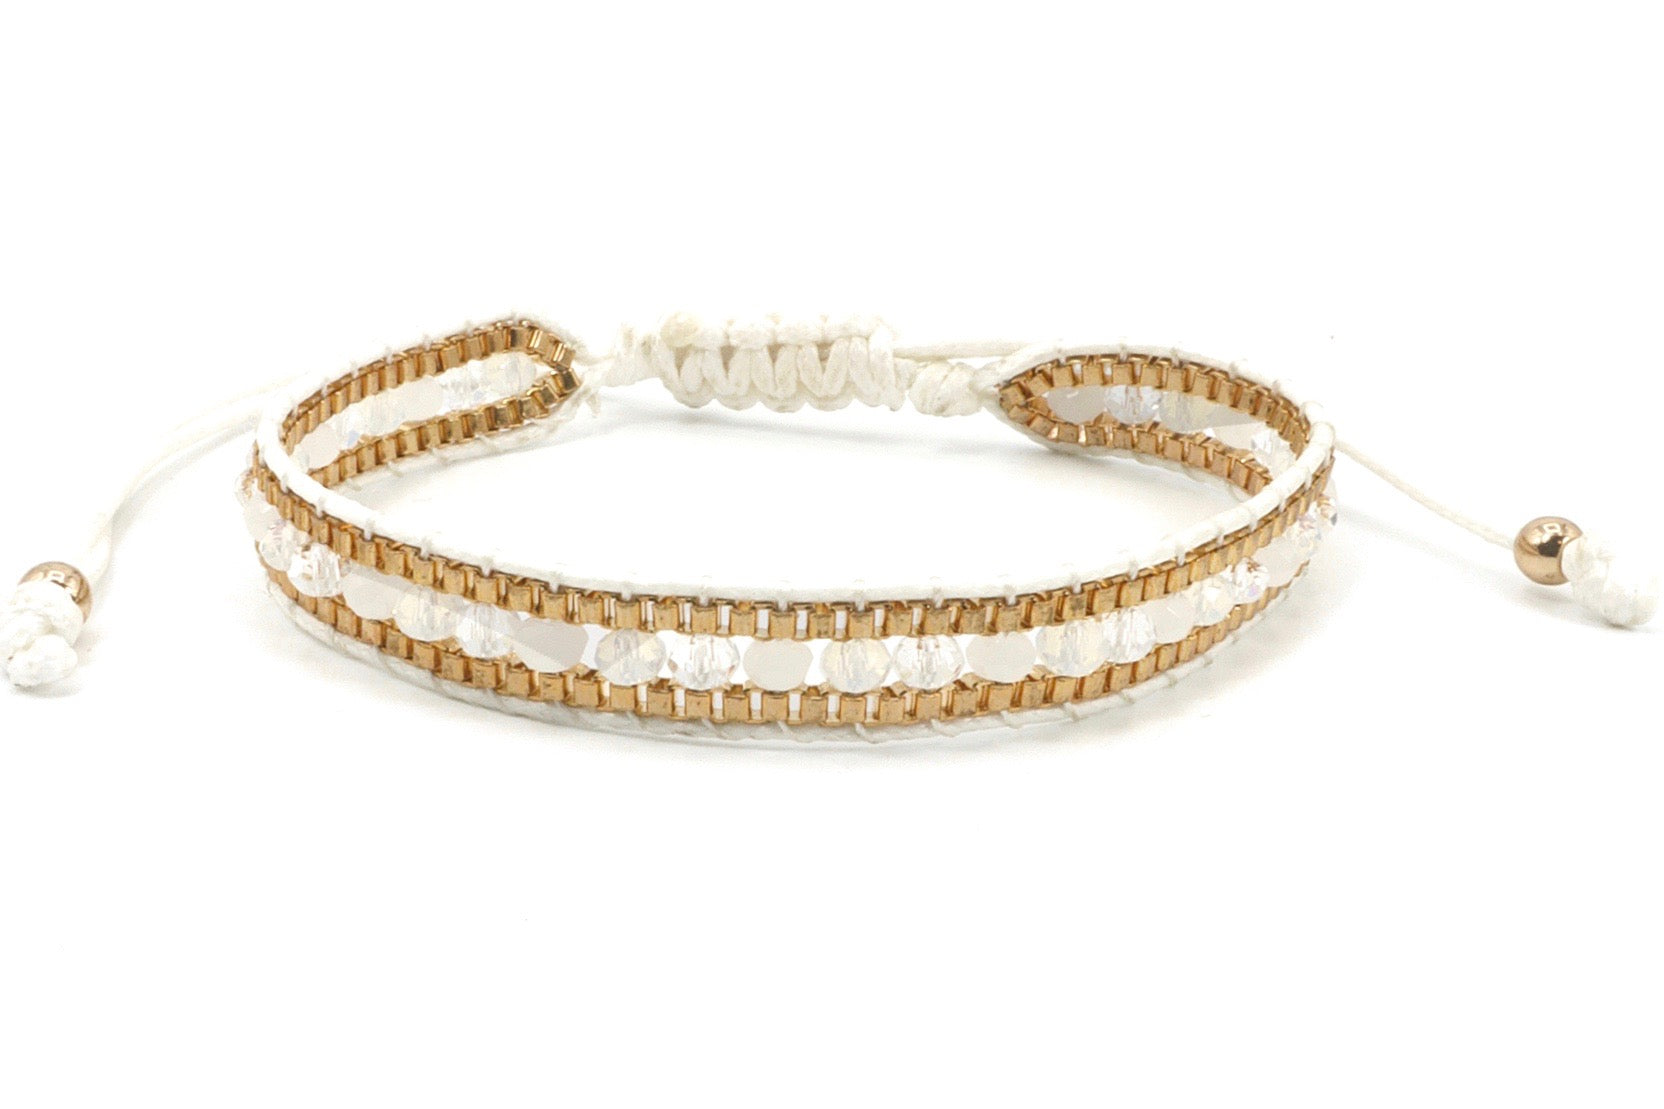 Single Wrap Bracelet with gold chain and white cotton cord.